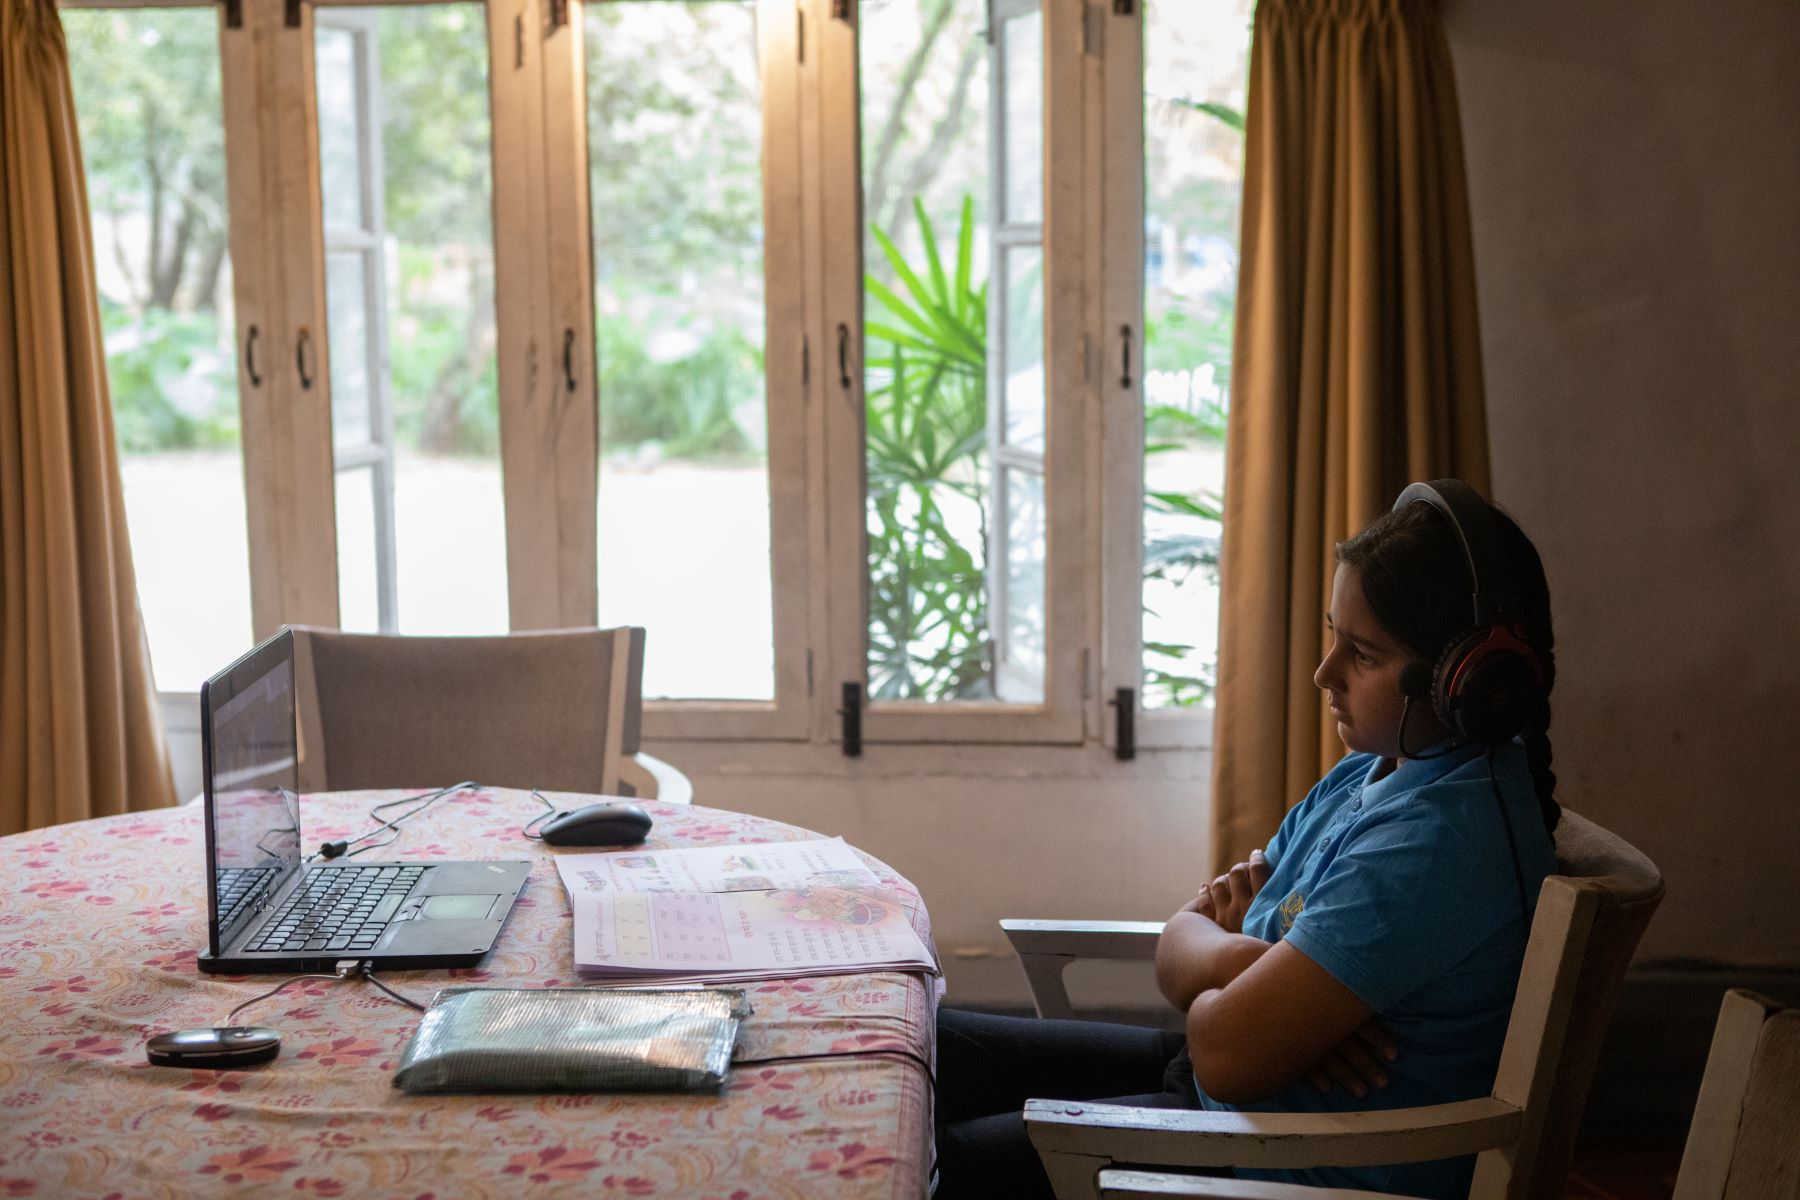 Simhasthita Singh during her online class at home in Bangalore, India.